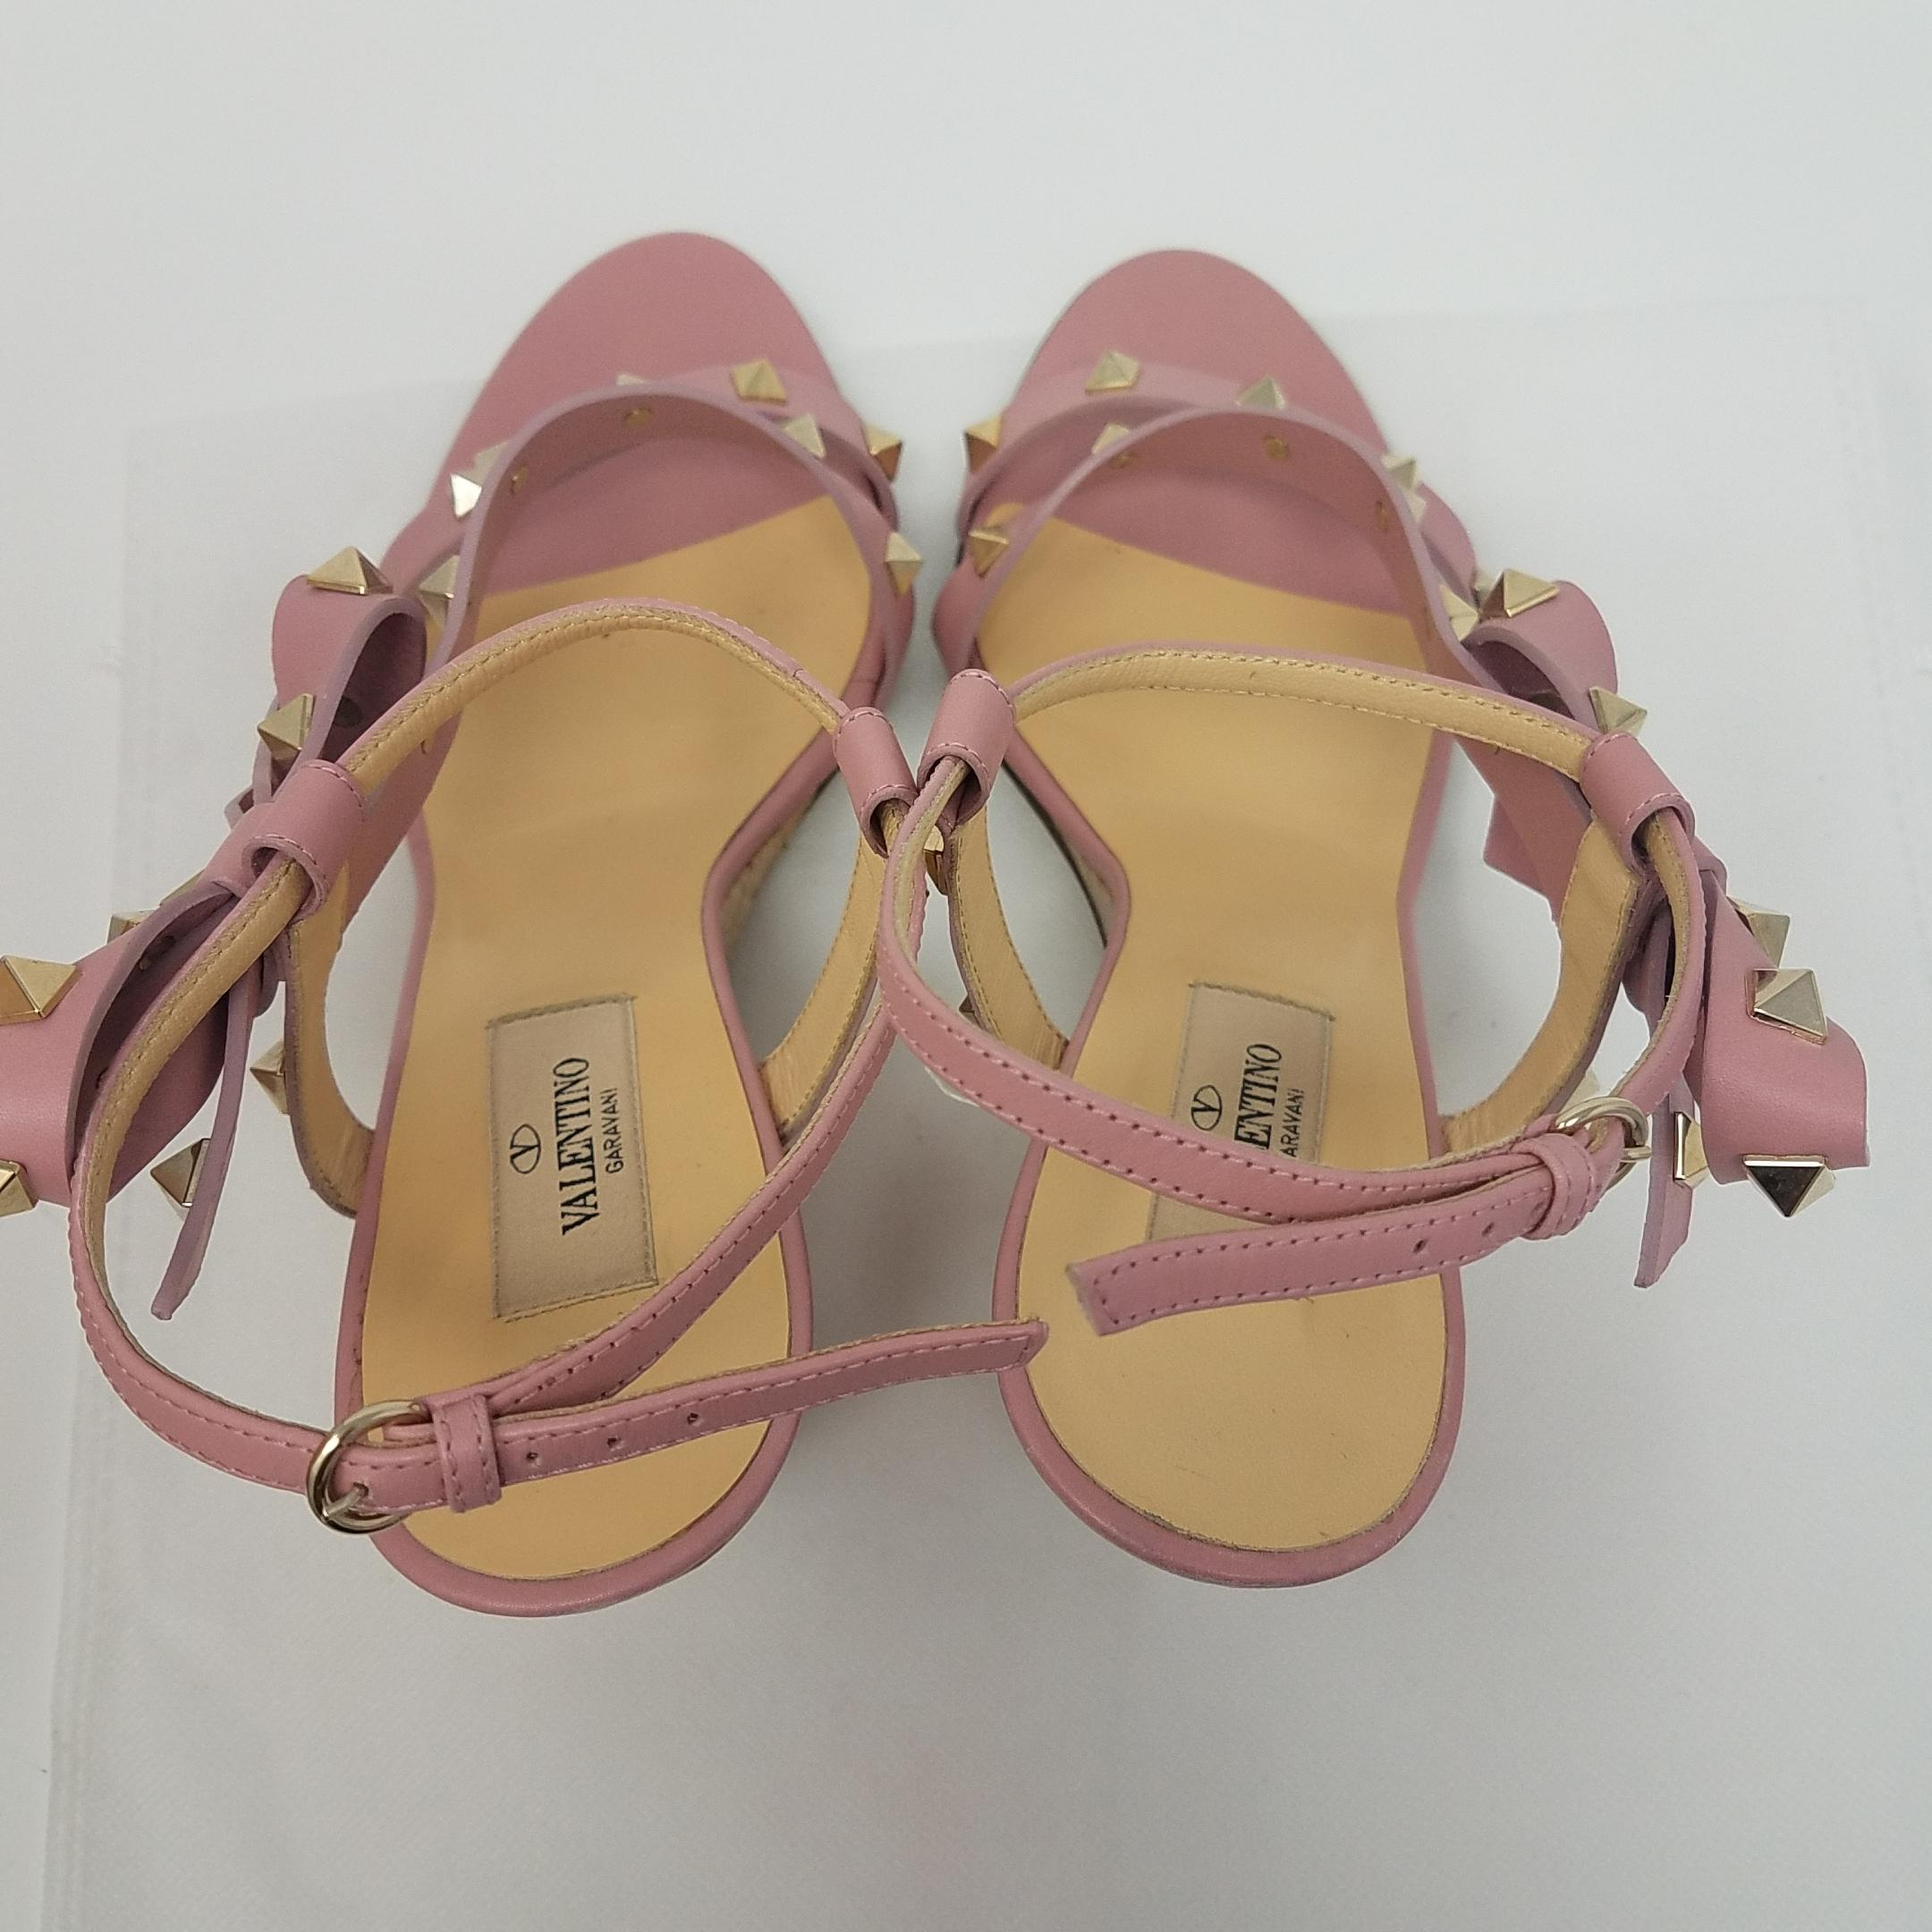 23a6e8592d30 Valentino Pink Gold Leather Rockstud Strappy Sandals Wedges Wedges Wedges  Size EU 40 (Approx.